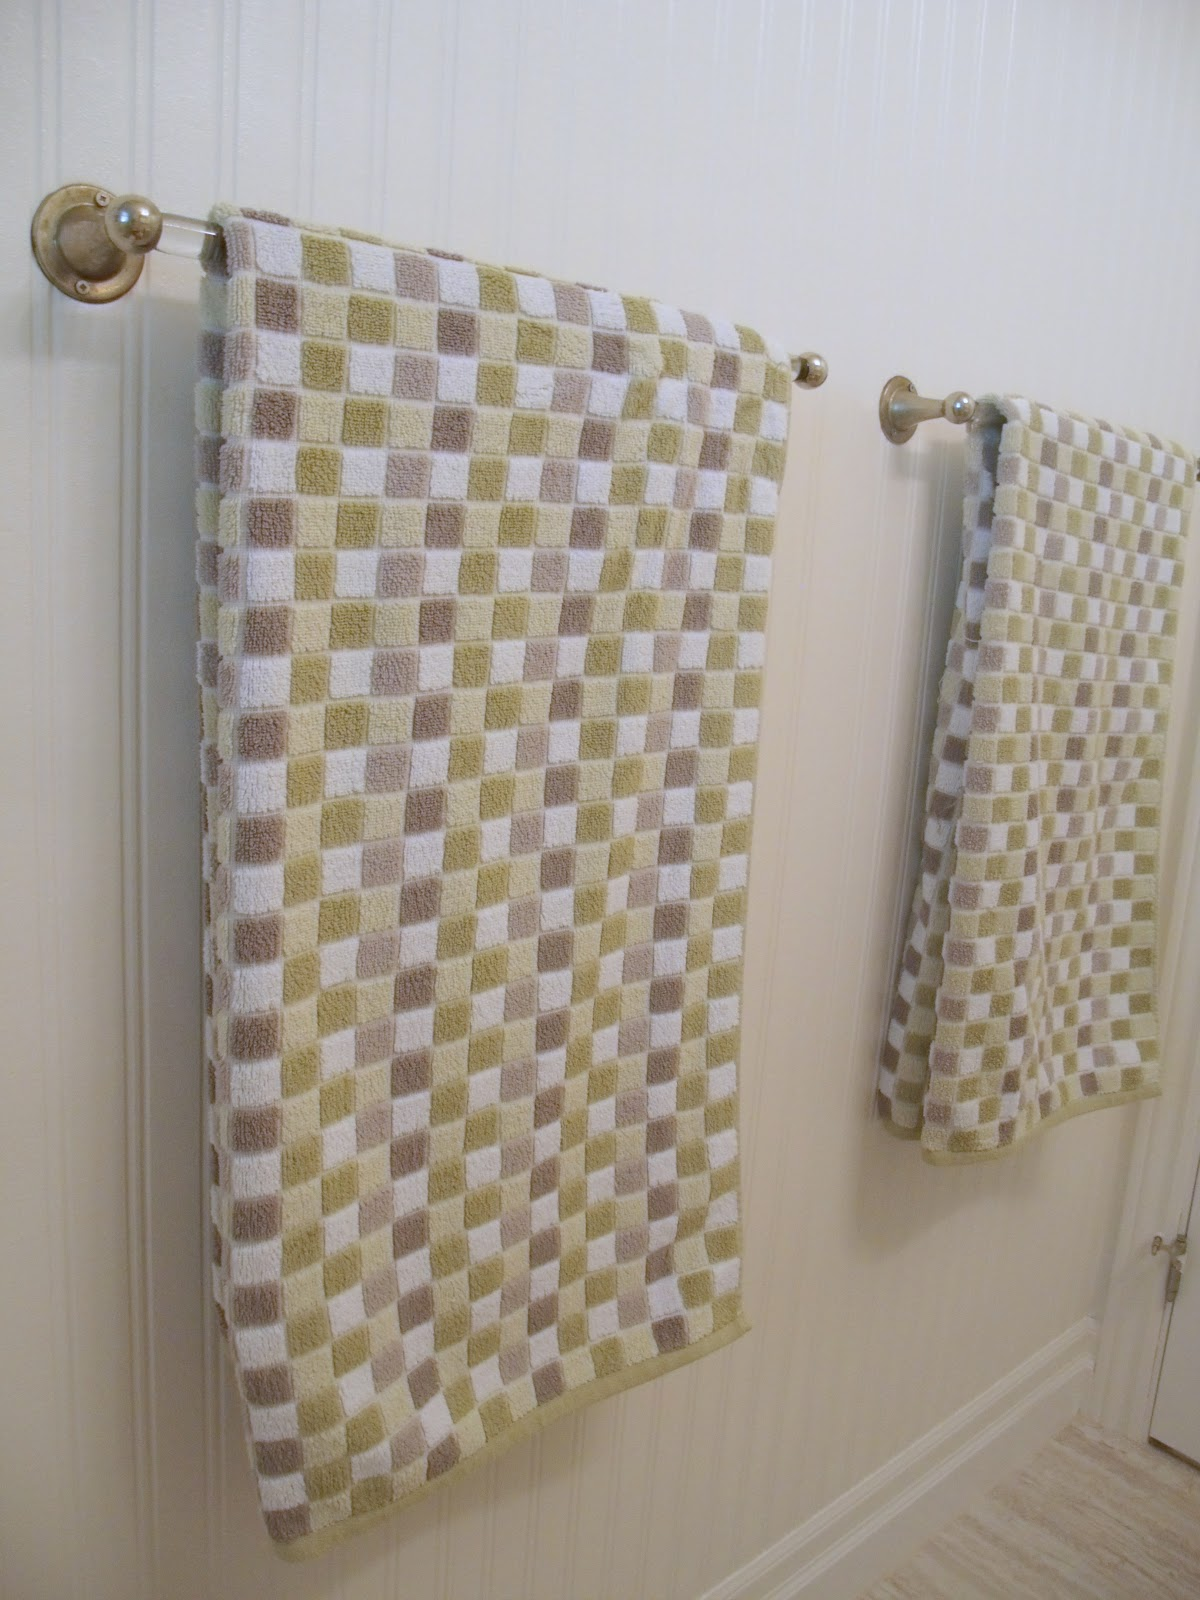 Hereu0027s Our New (old) Towel Bar Set Up: